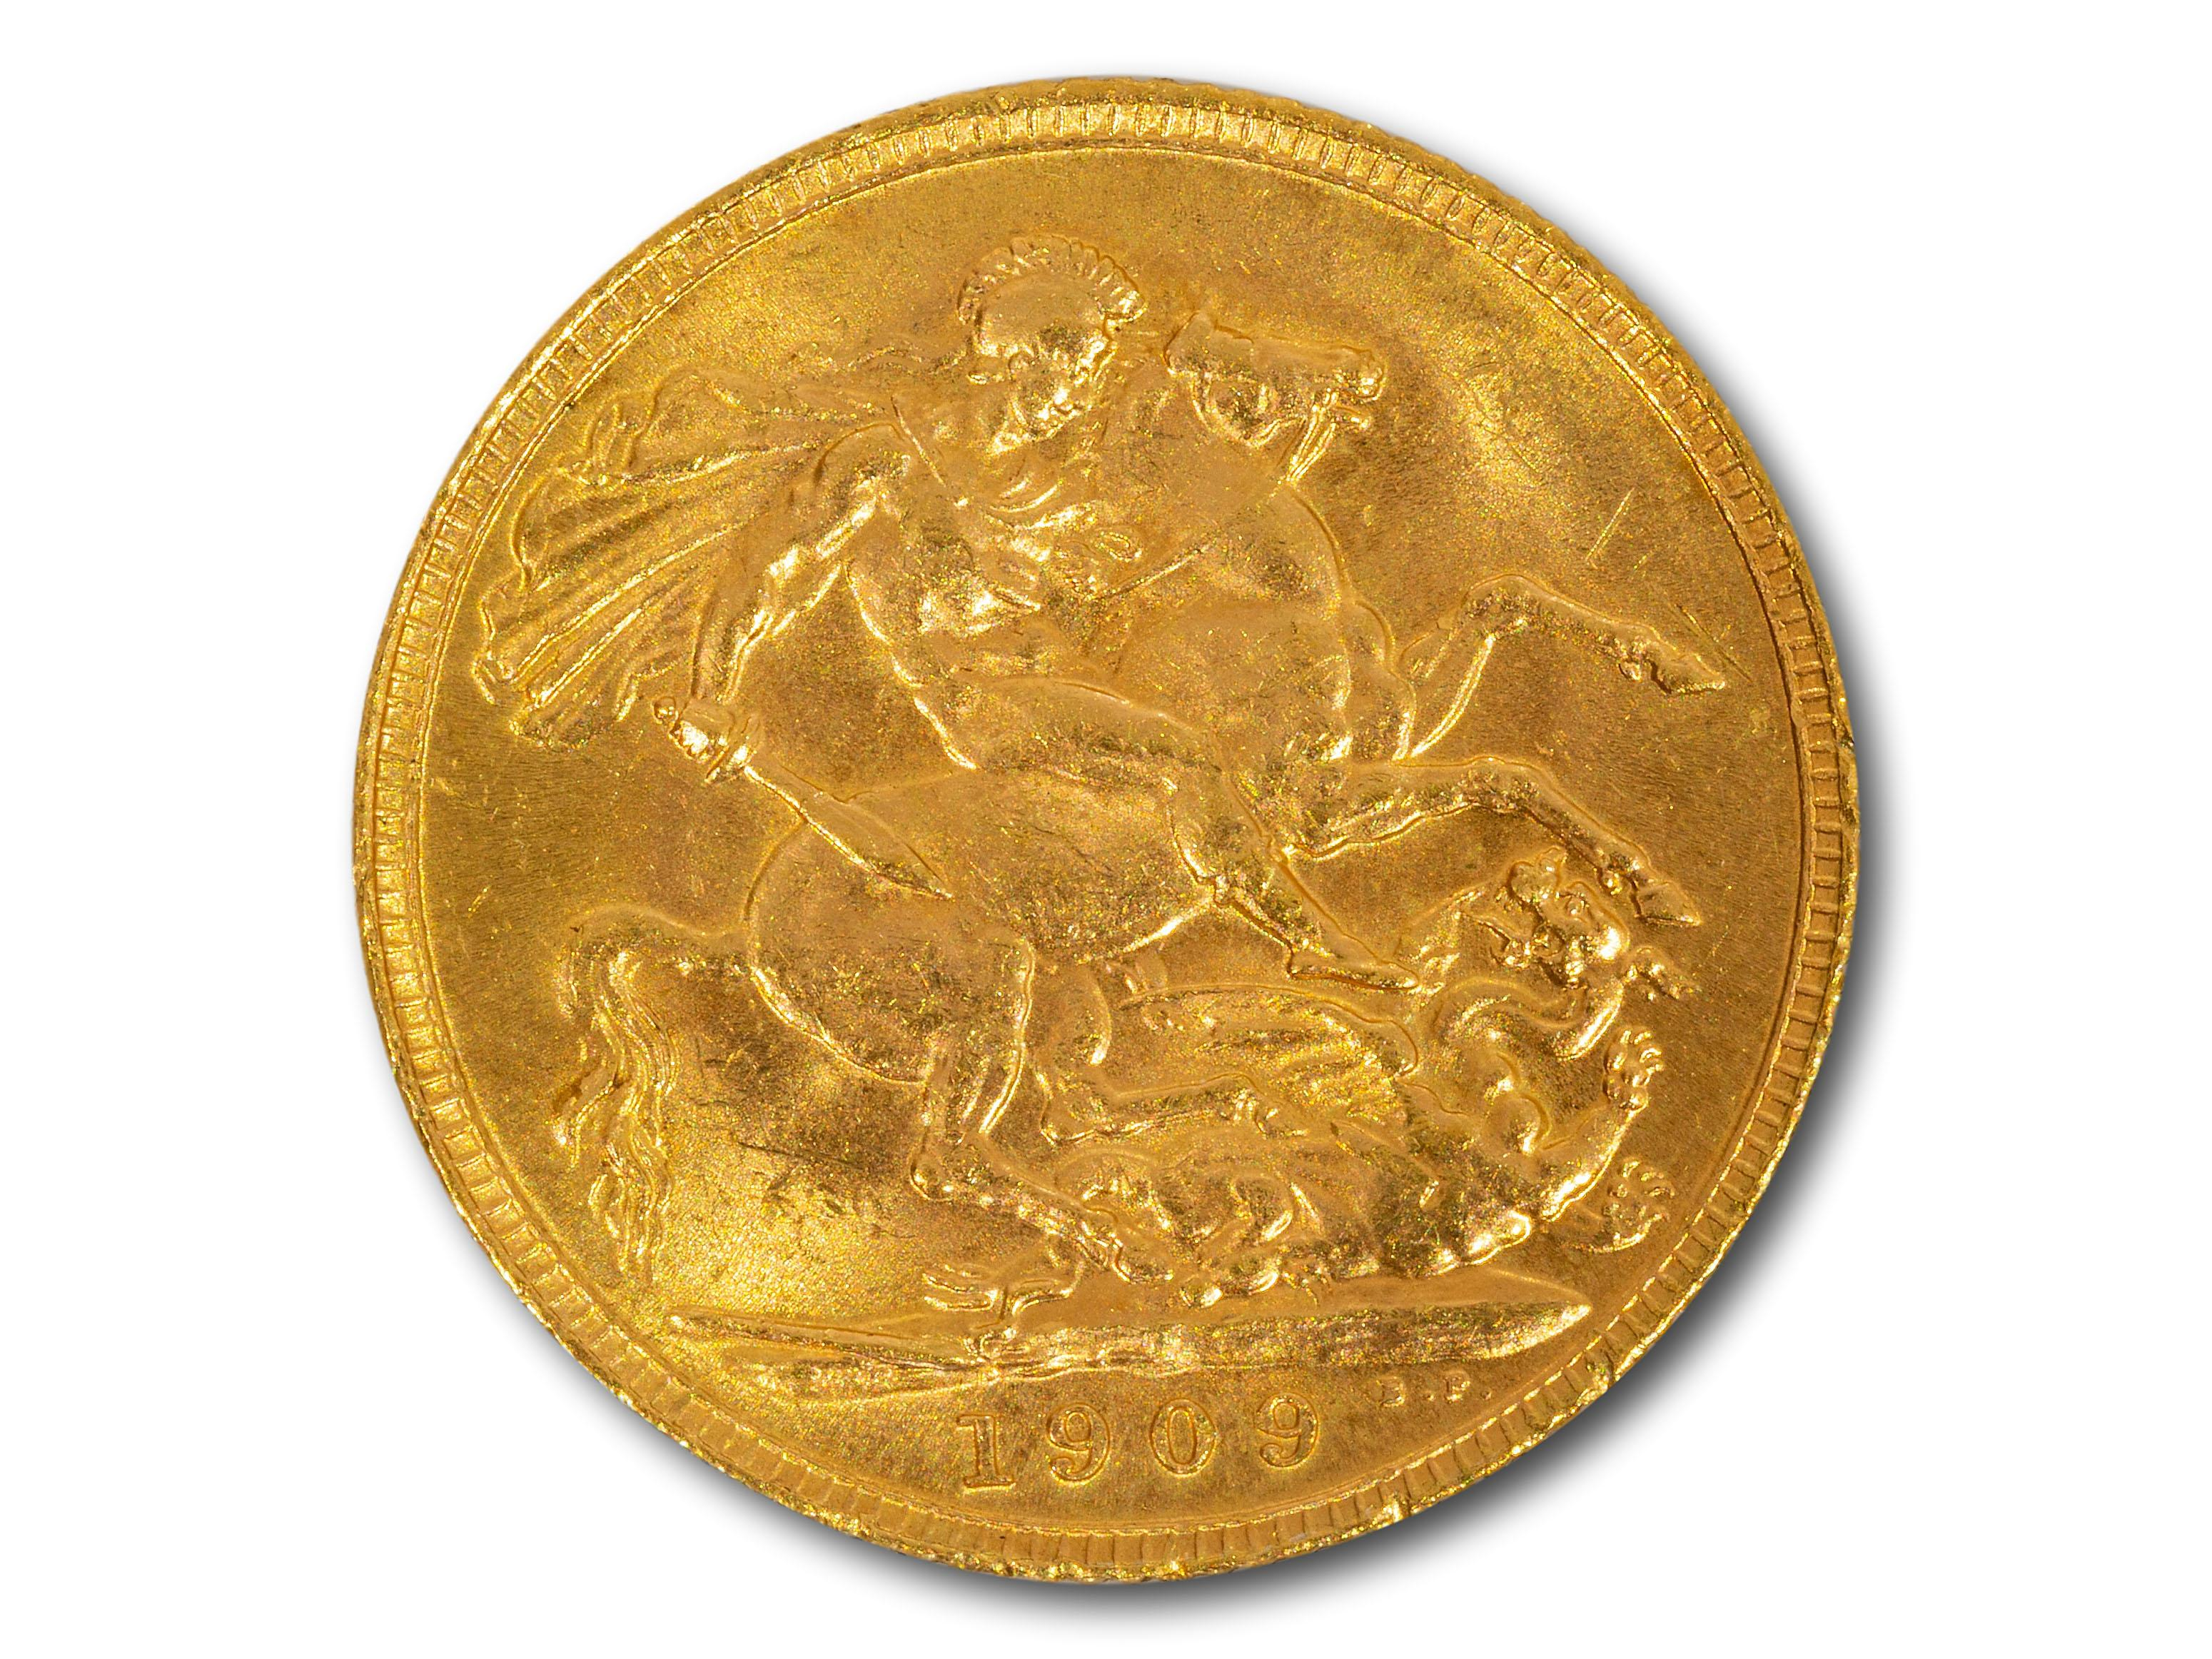 A 1909 Edward VII Gold Sovereign, total weight 8g